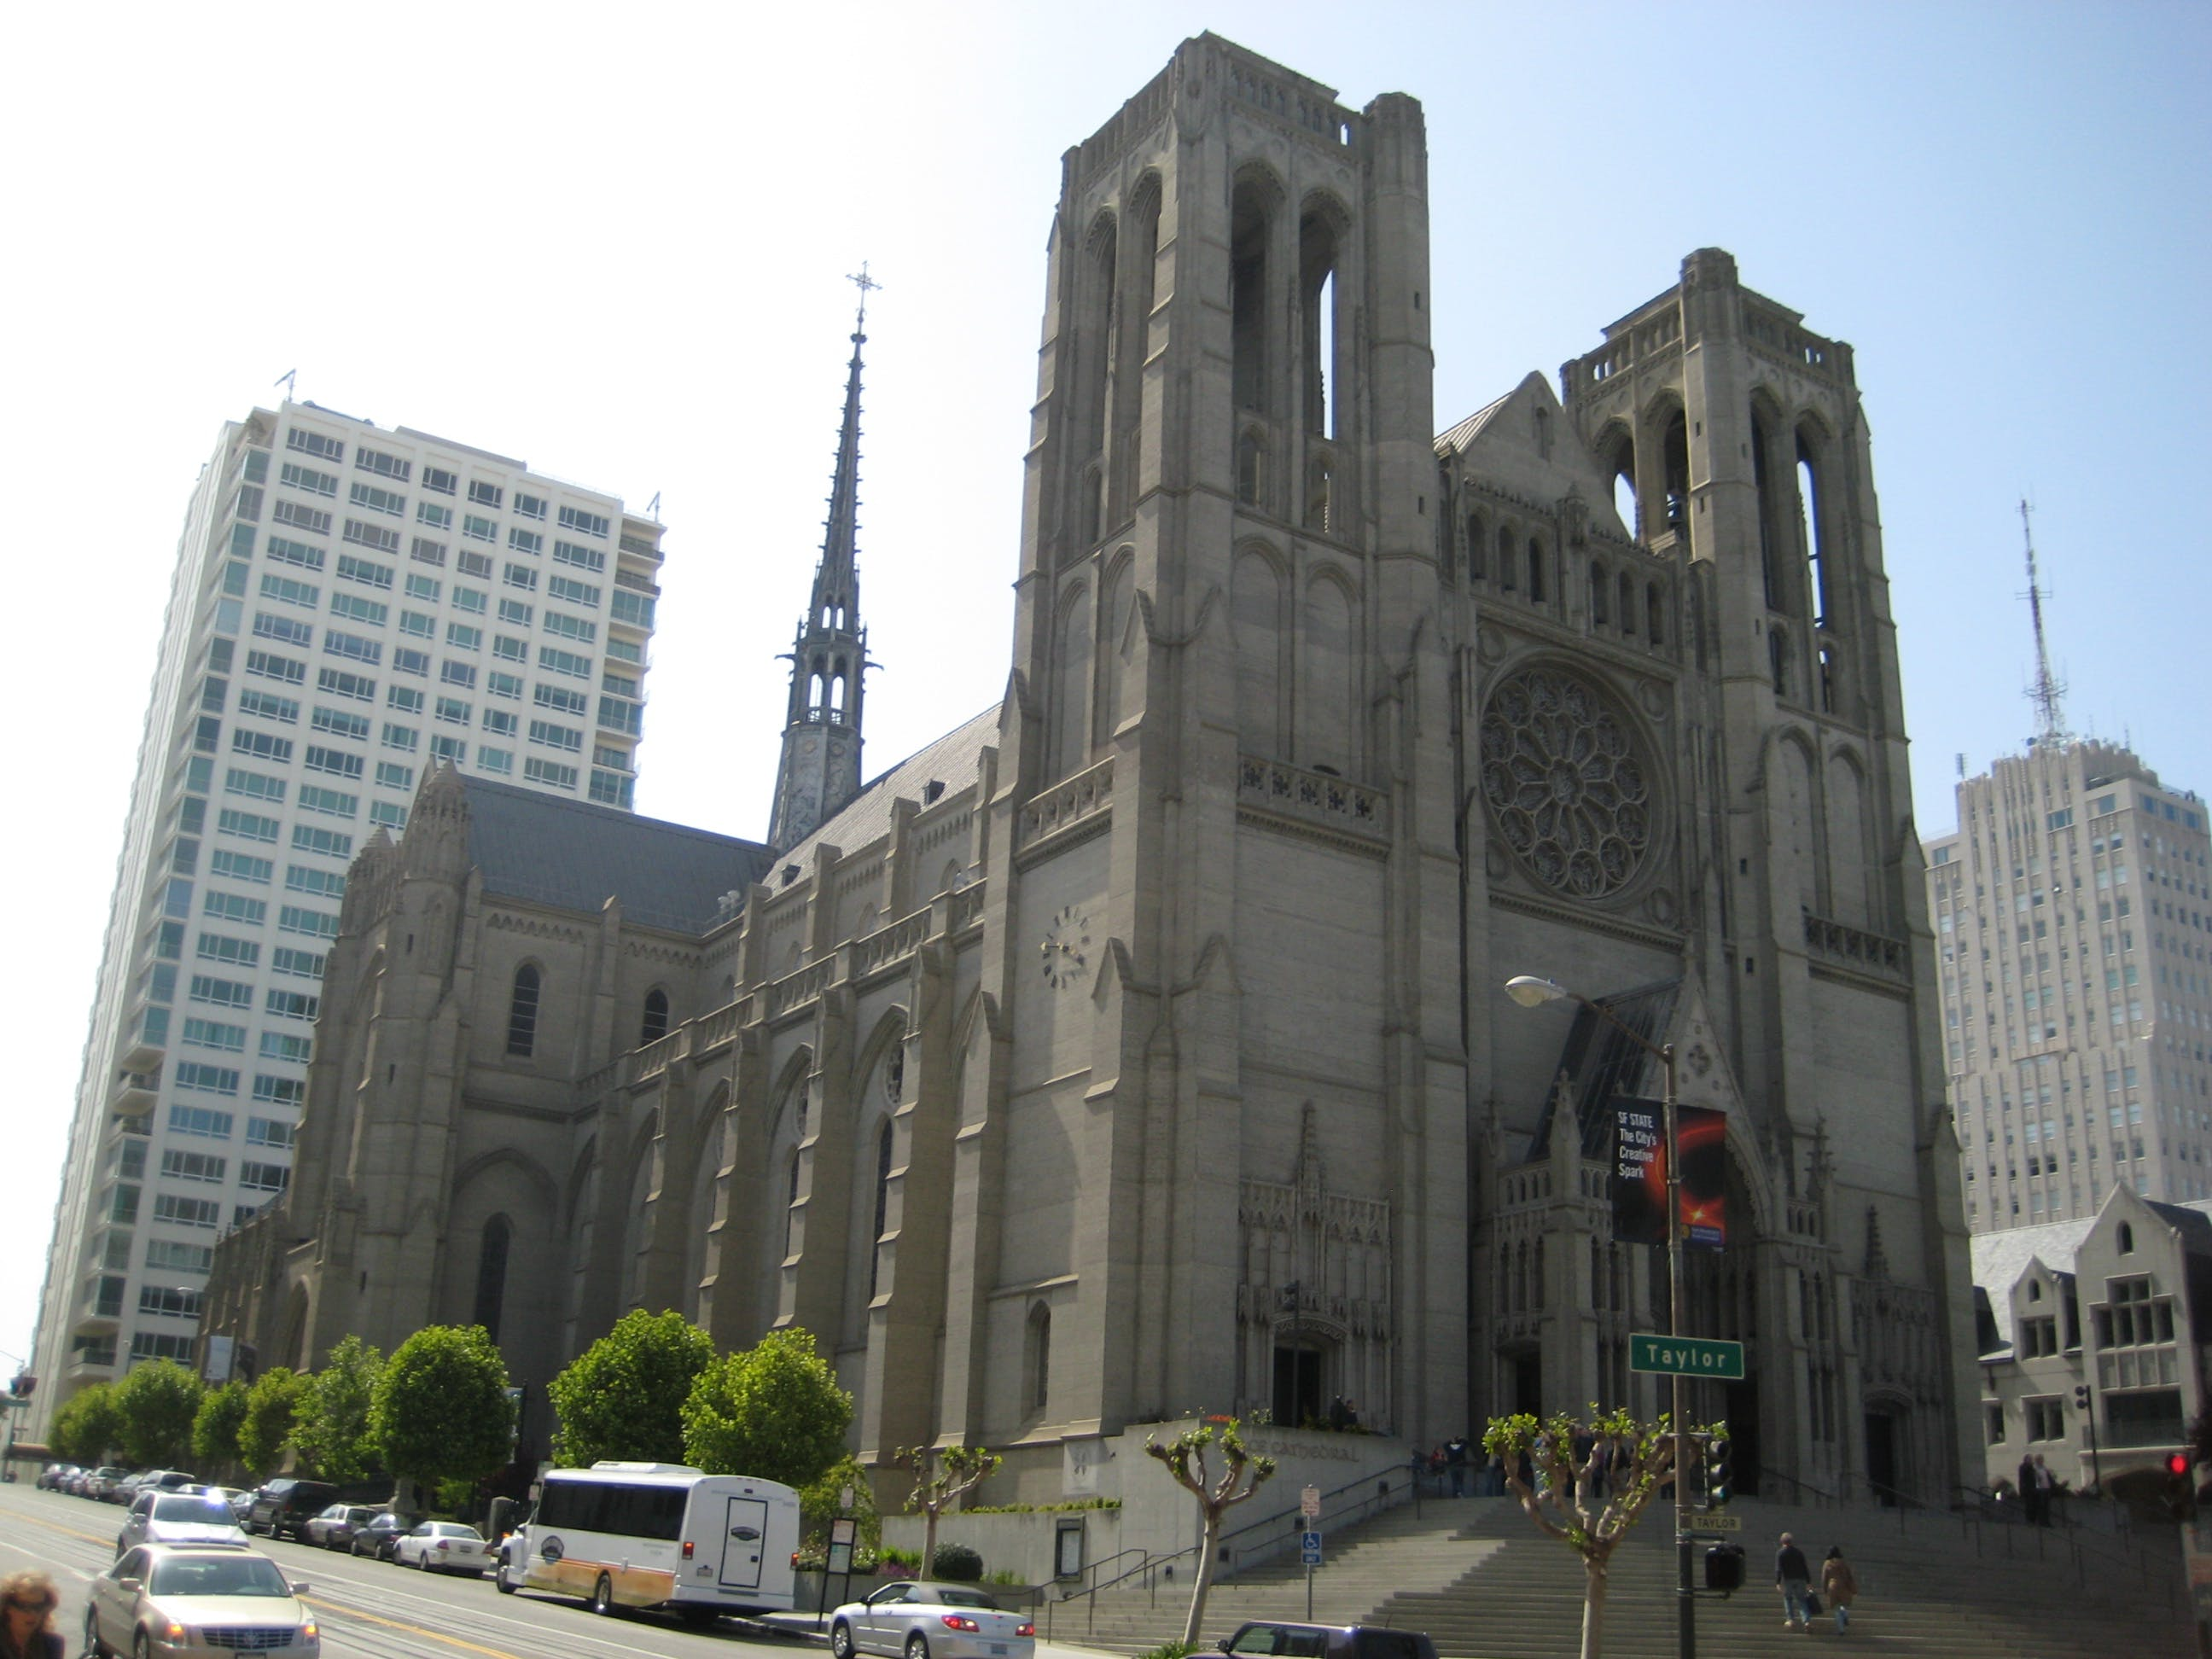 The Dylan Hotel - Grace Cathedral is an Episcopal cathedral on Nob Hill.